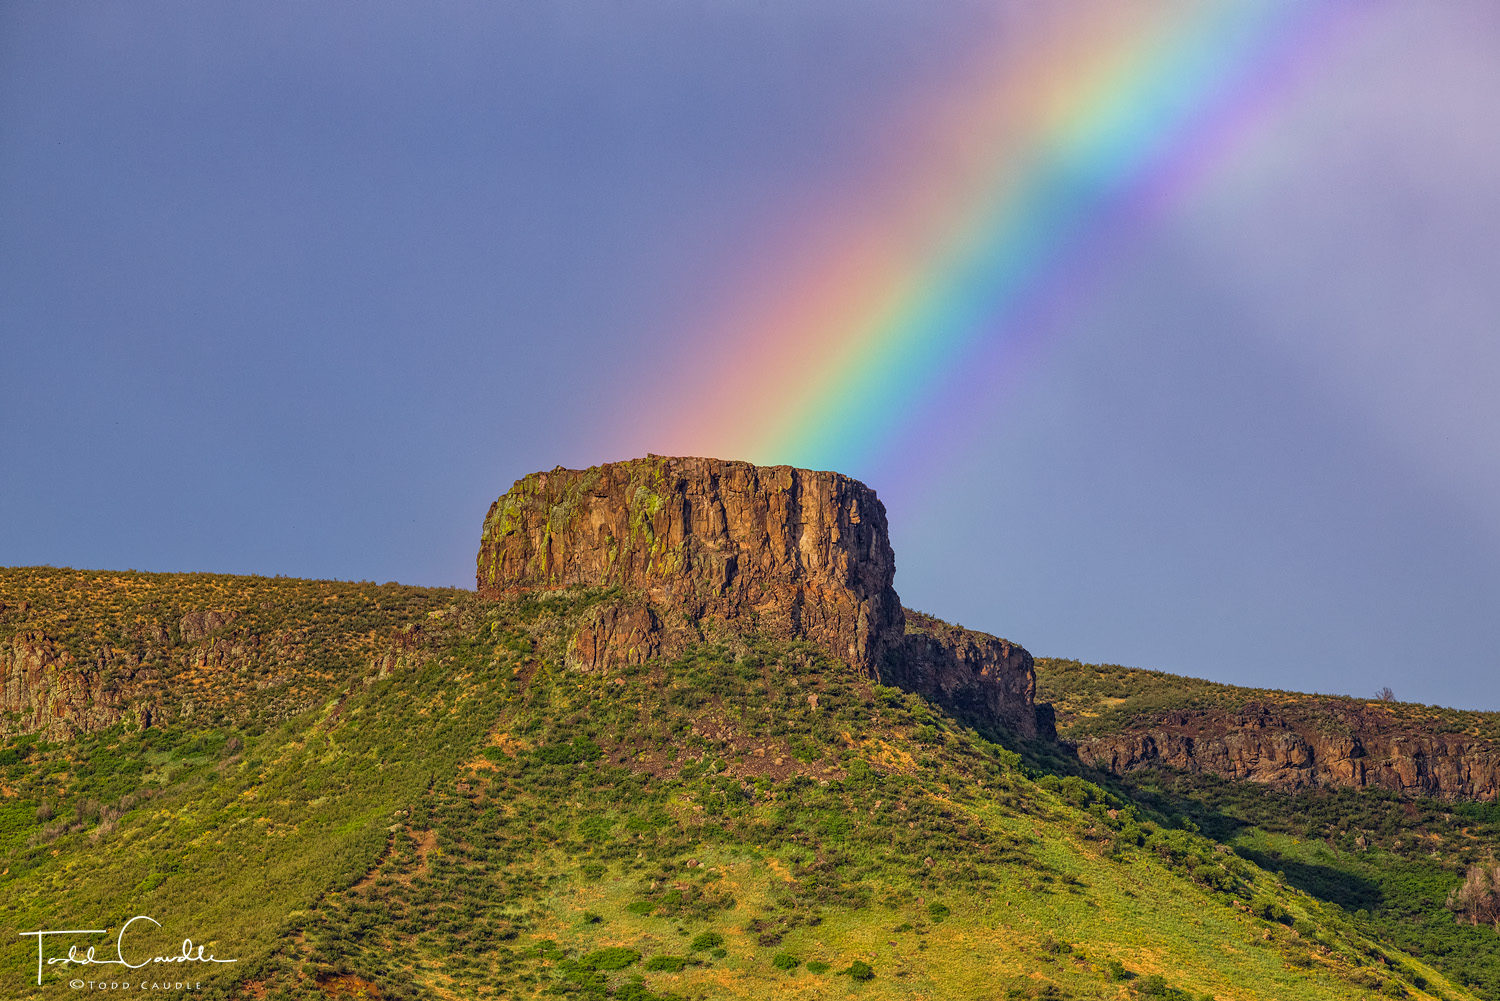 A rainbow arcs off the summit of Castle Rock, the familiar rock outcrop that represents the skyline of the town of Golden. This...